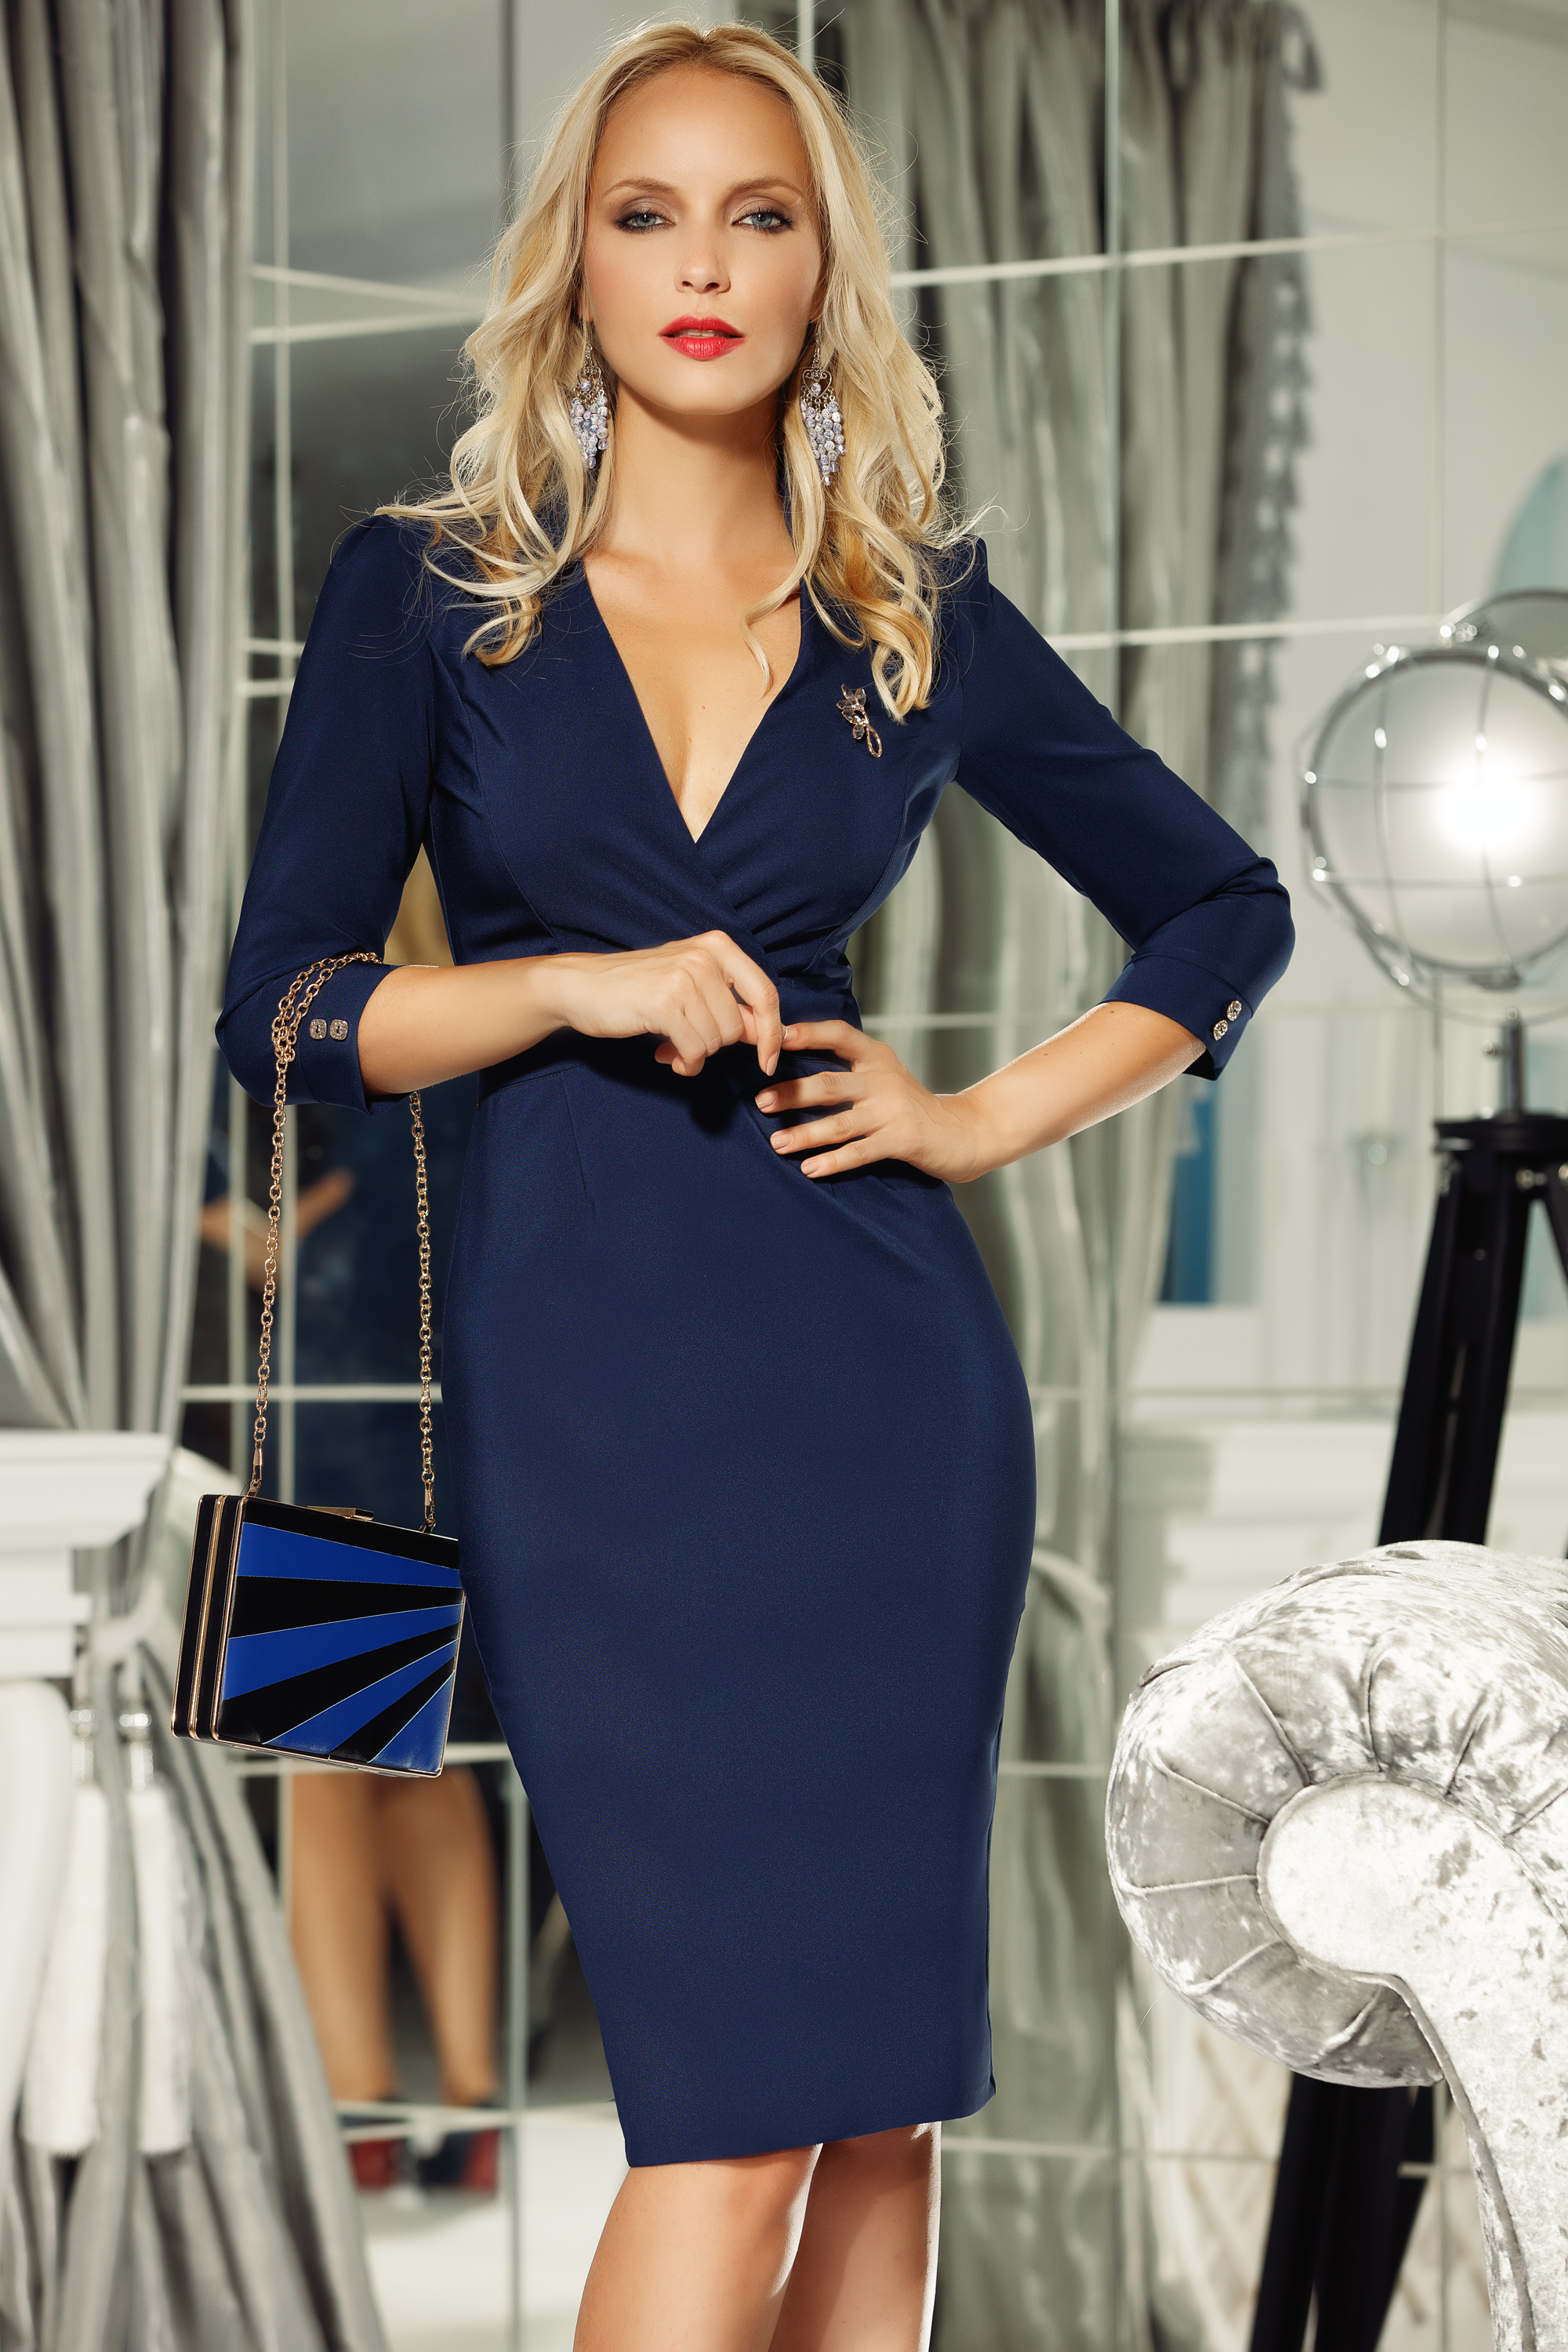 Fofy darkblue office pencil dress slightly elastic fabric with v-neckline accessorized with breastpin